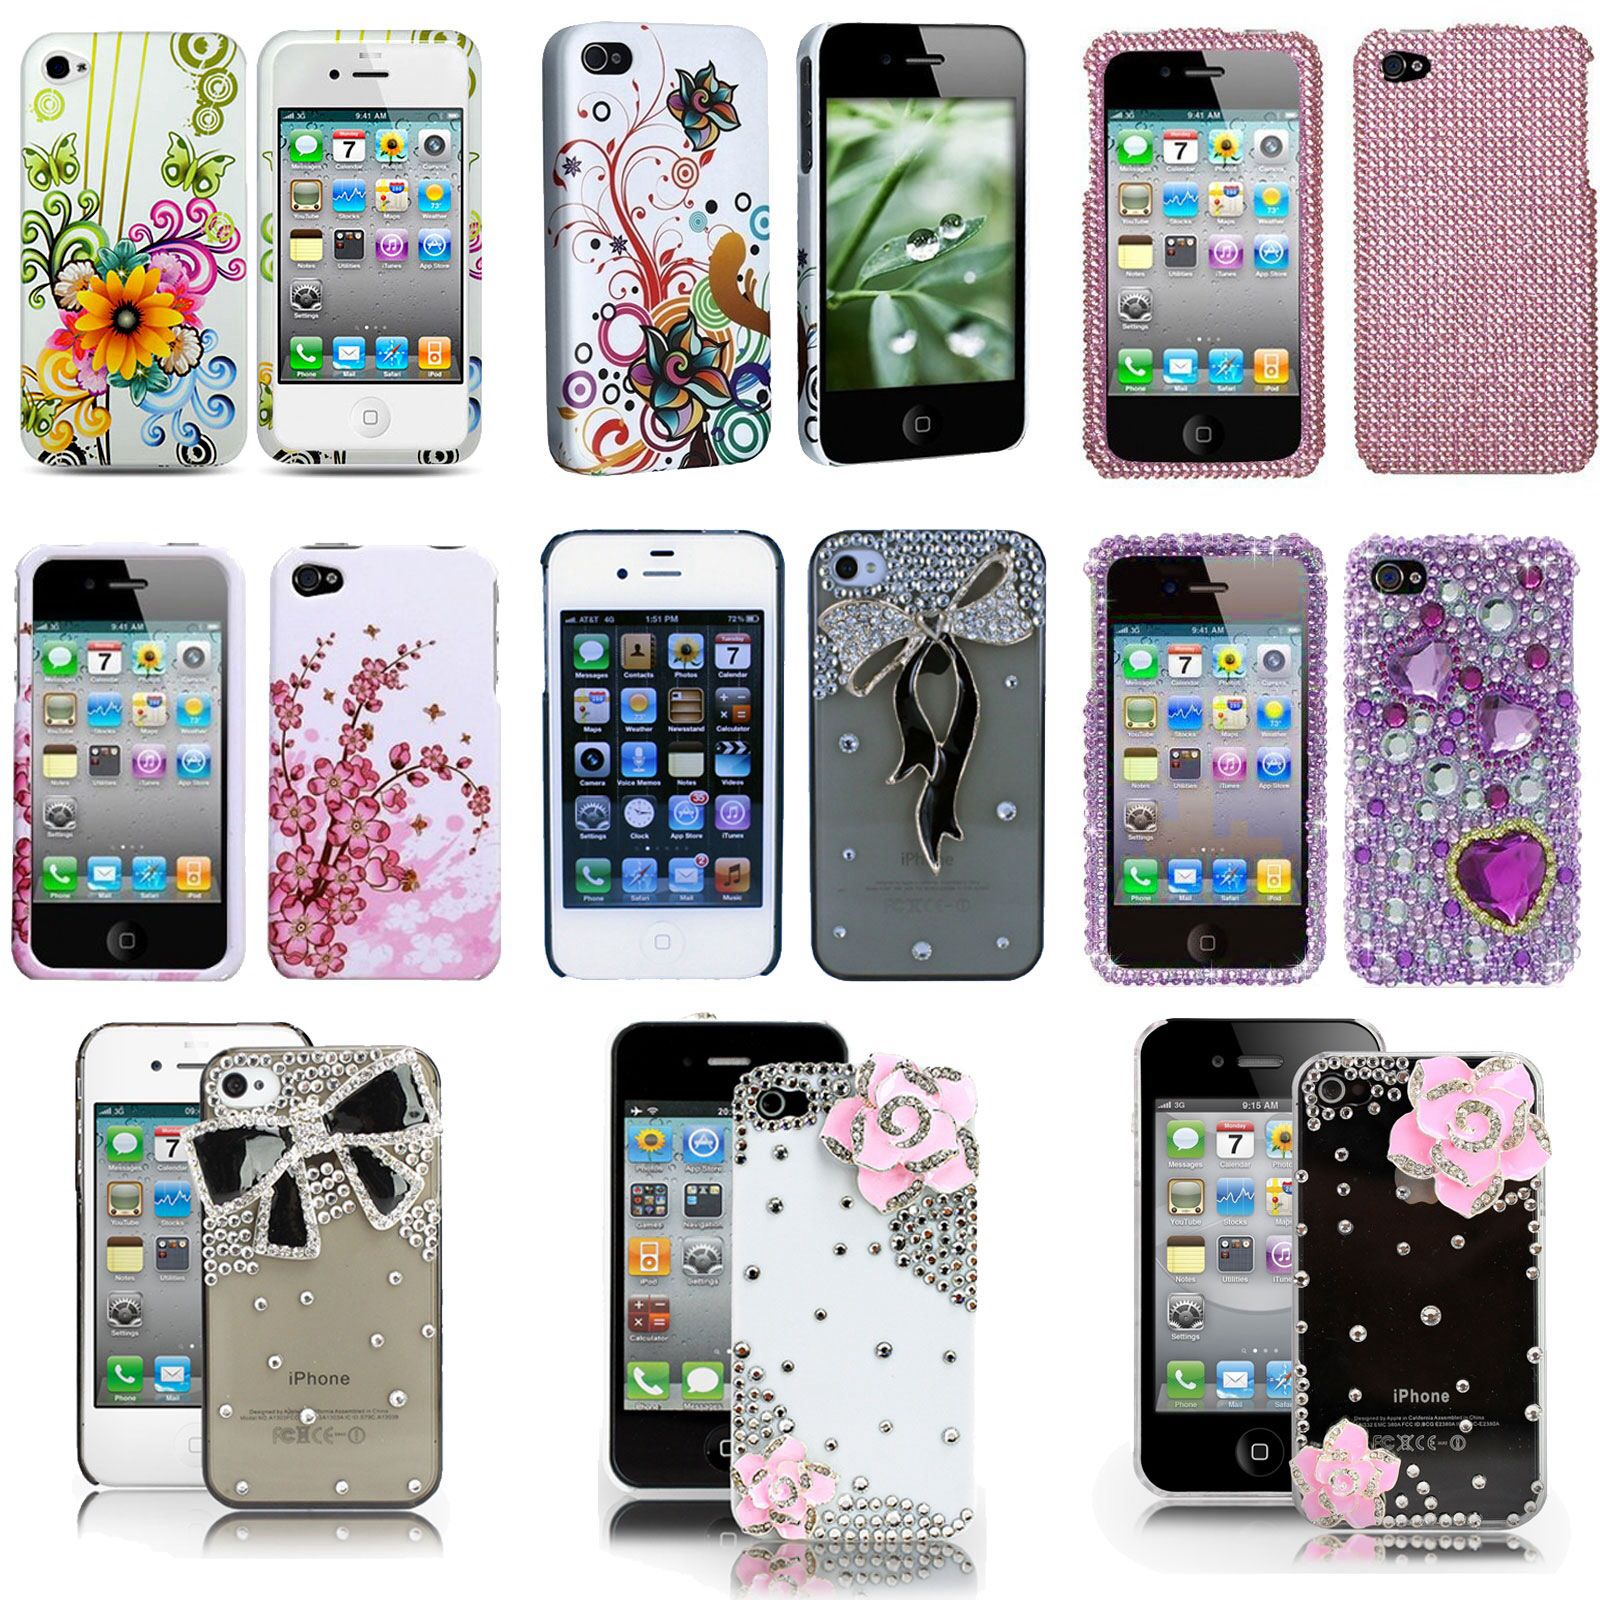 Really Cute Iphone Cases